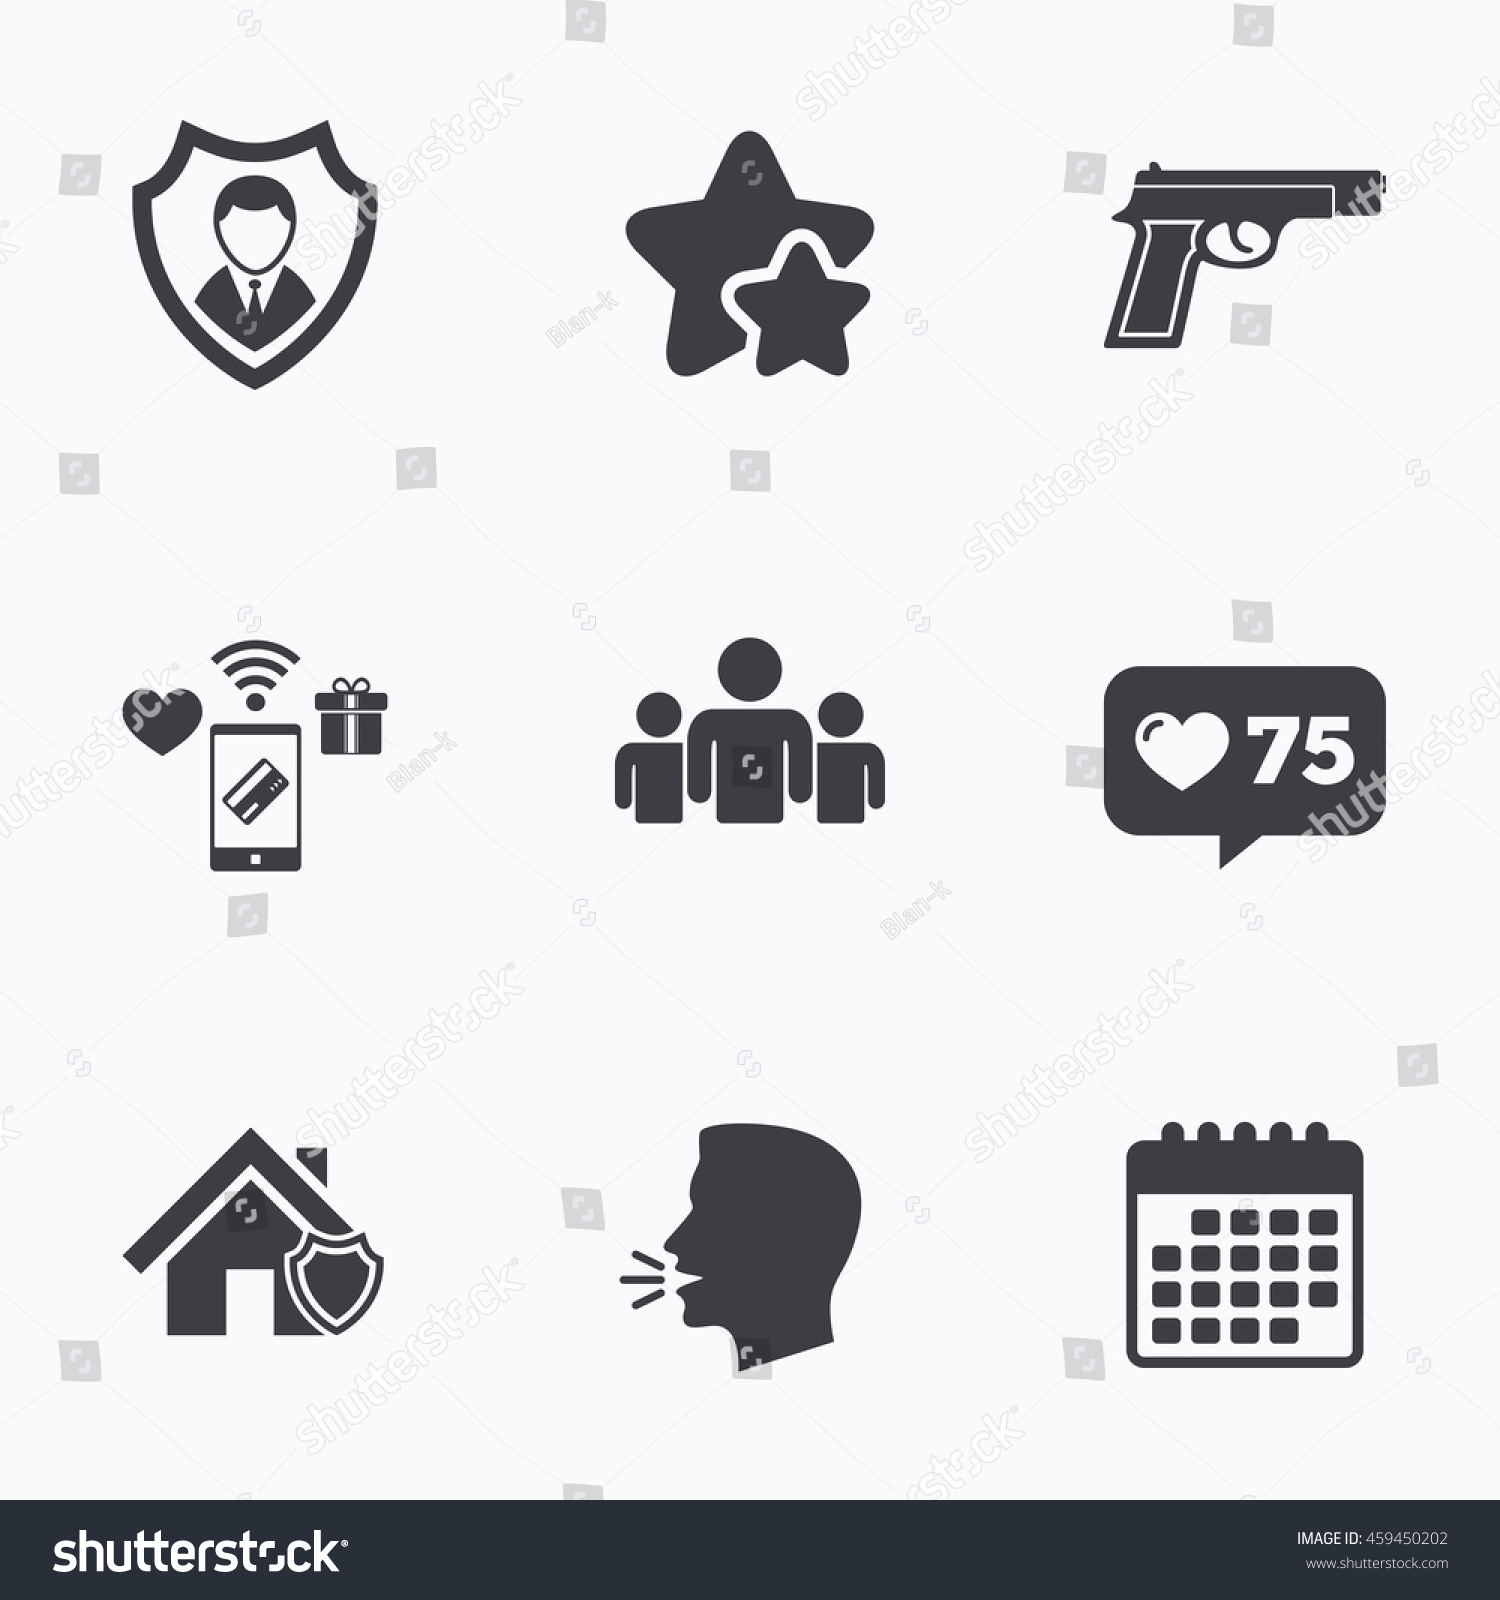 Security agency icons home shield protection stock illustration home shield protection symbols gun weapon sign group of people biocorpaavc